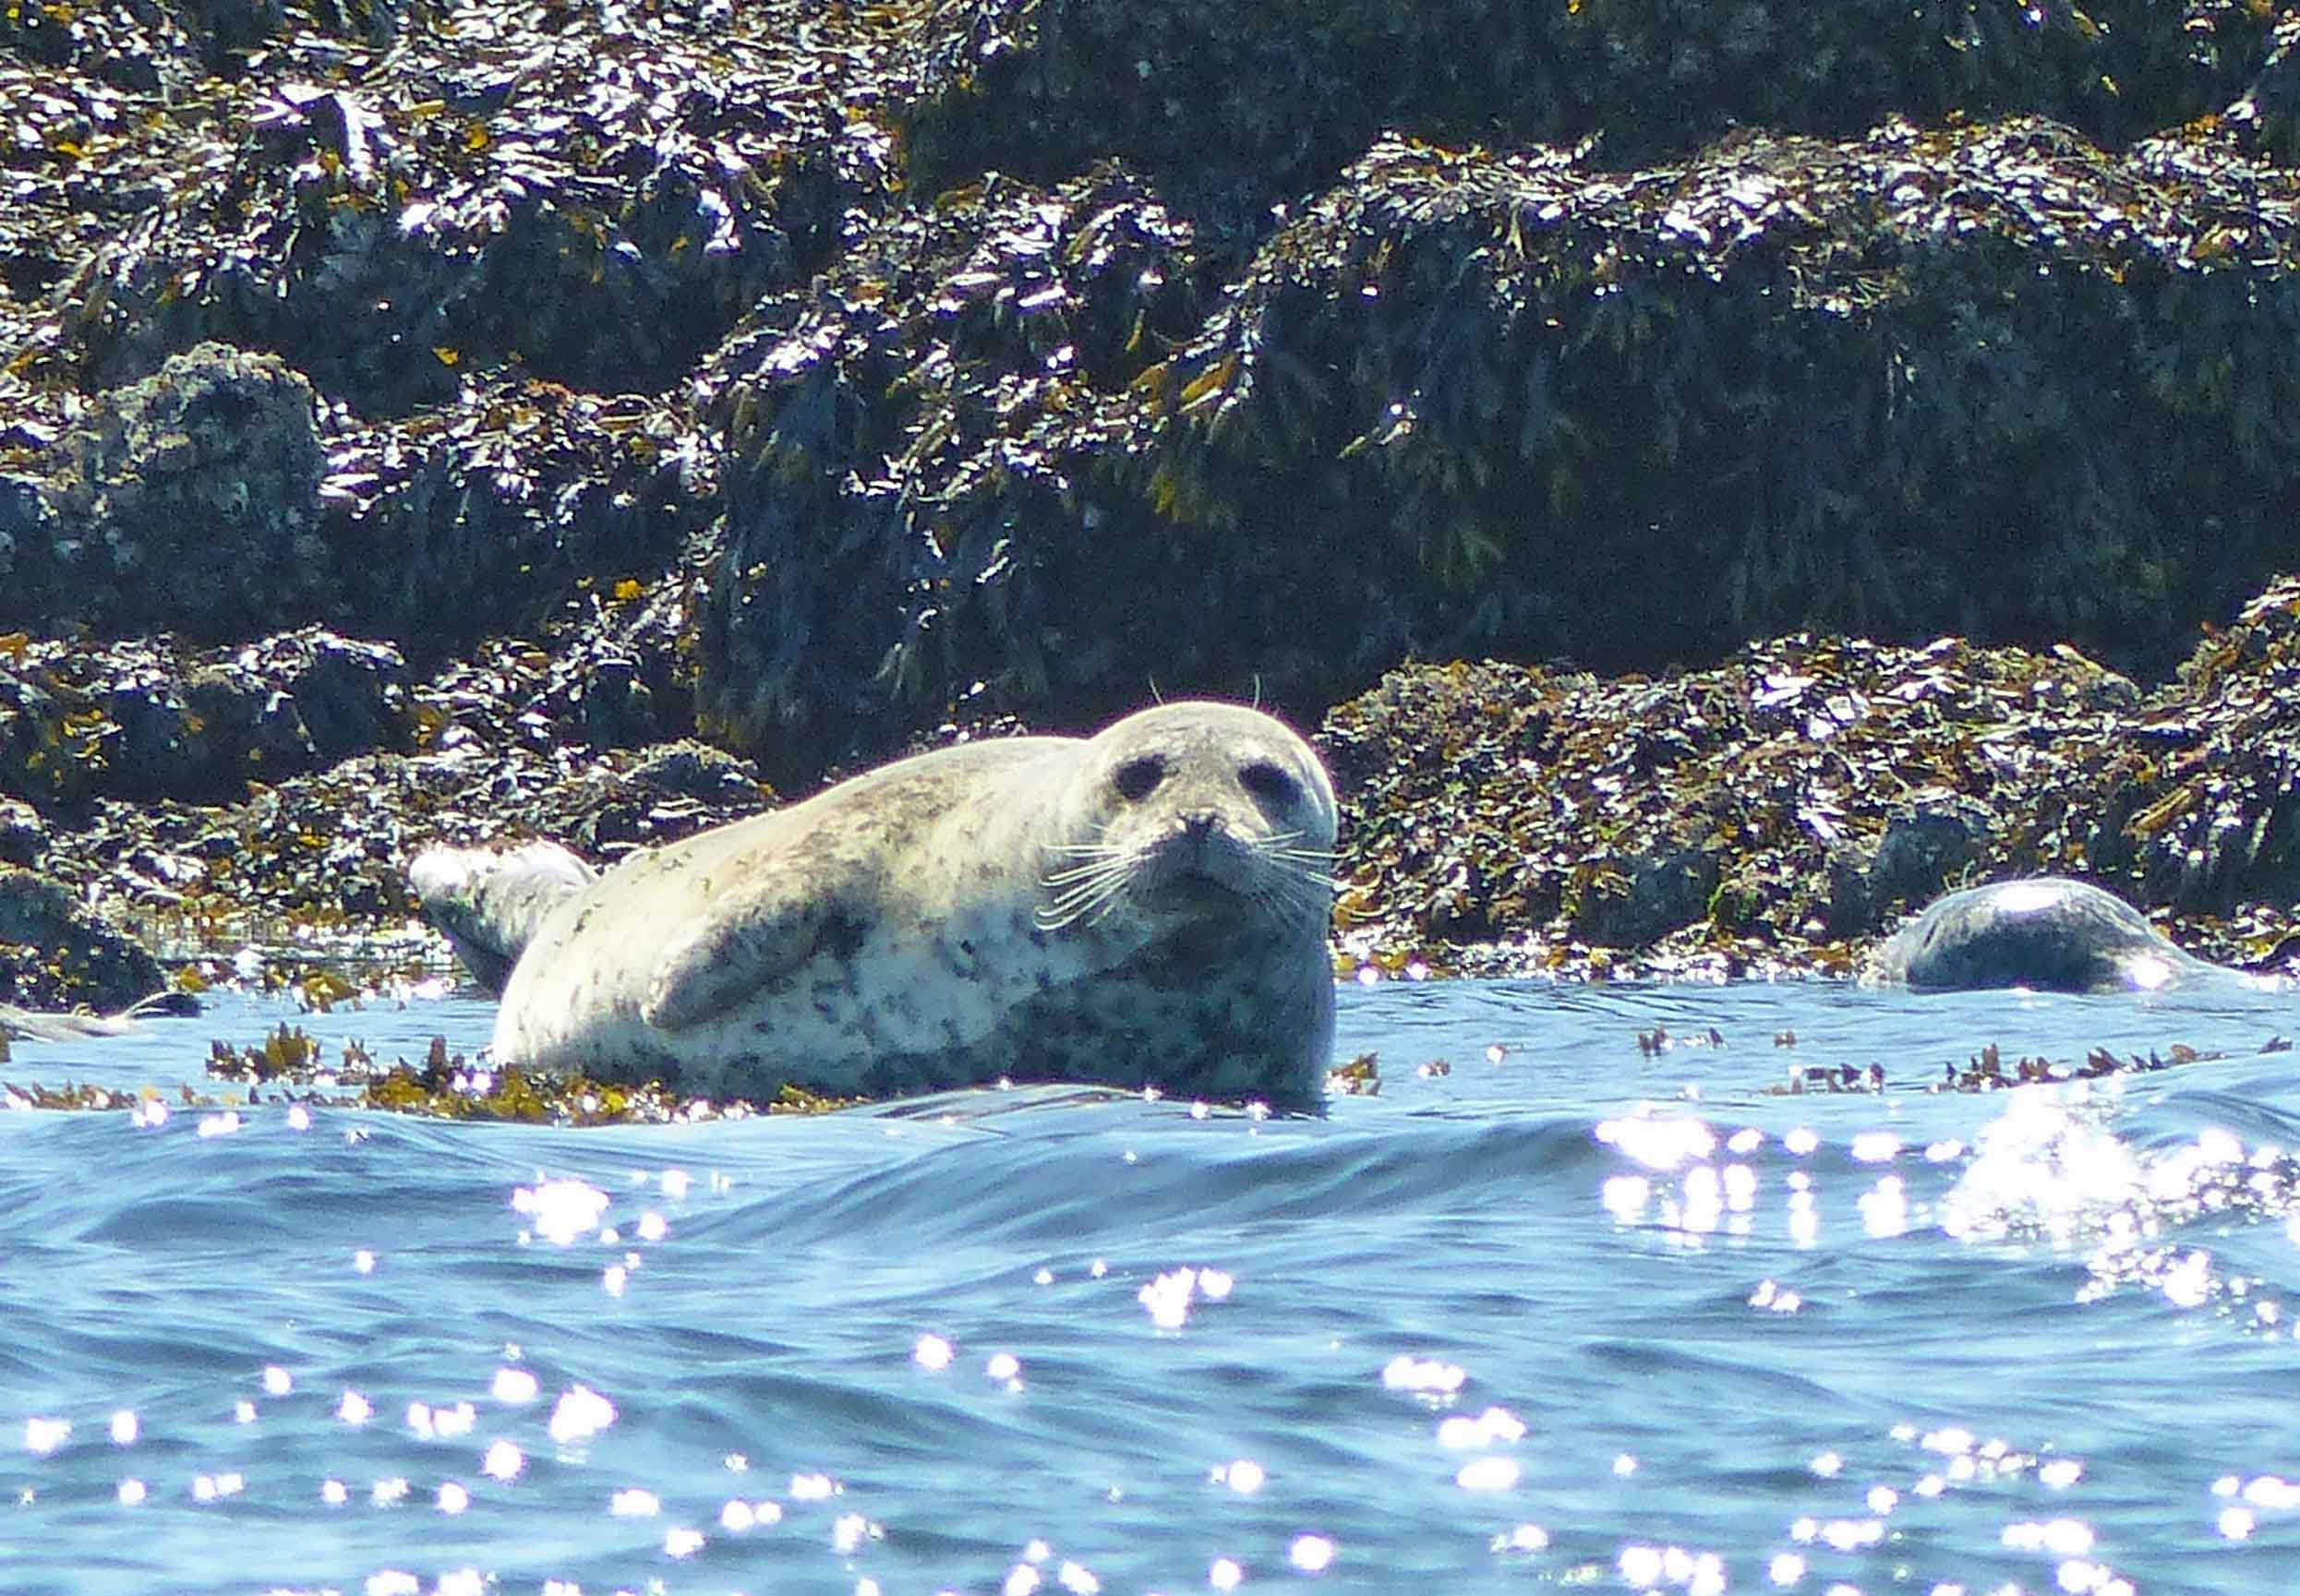 Seal by the water's edge